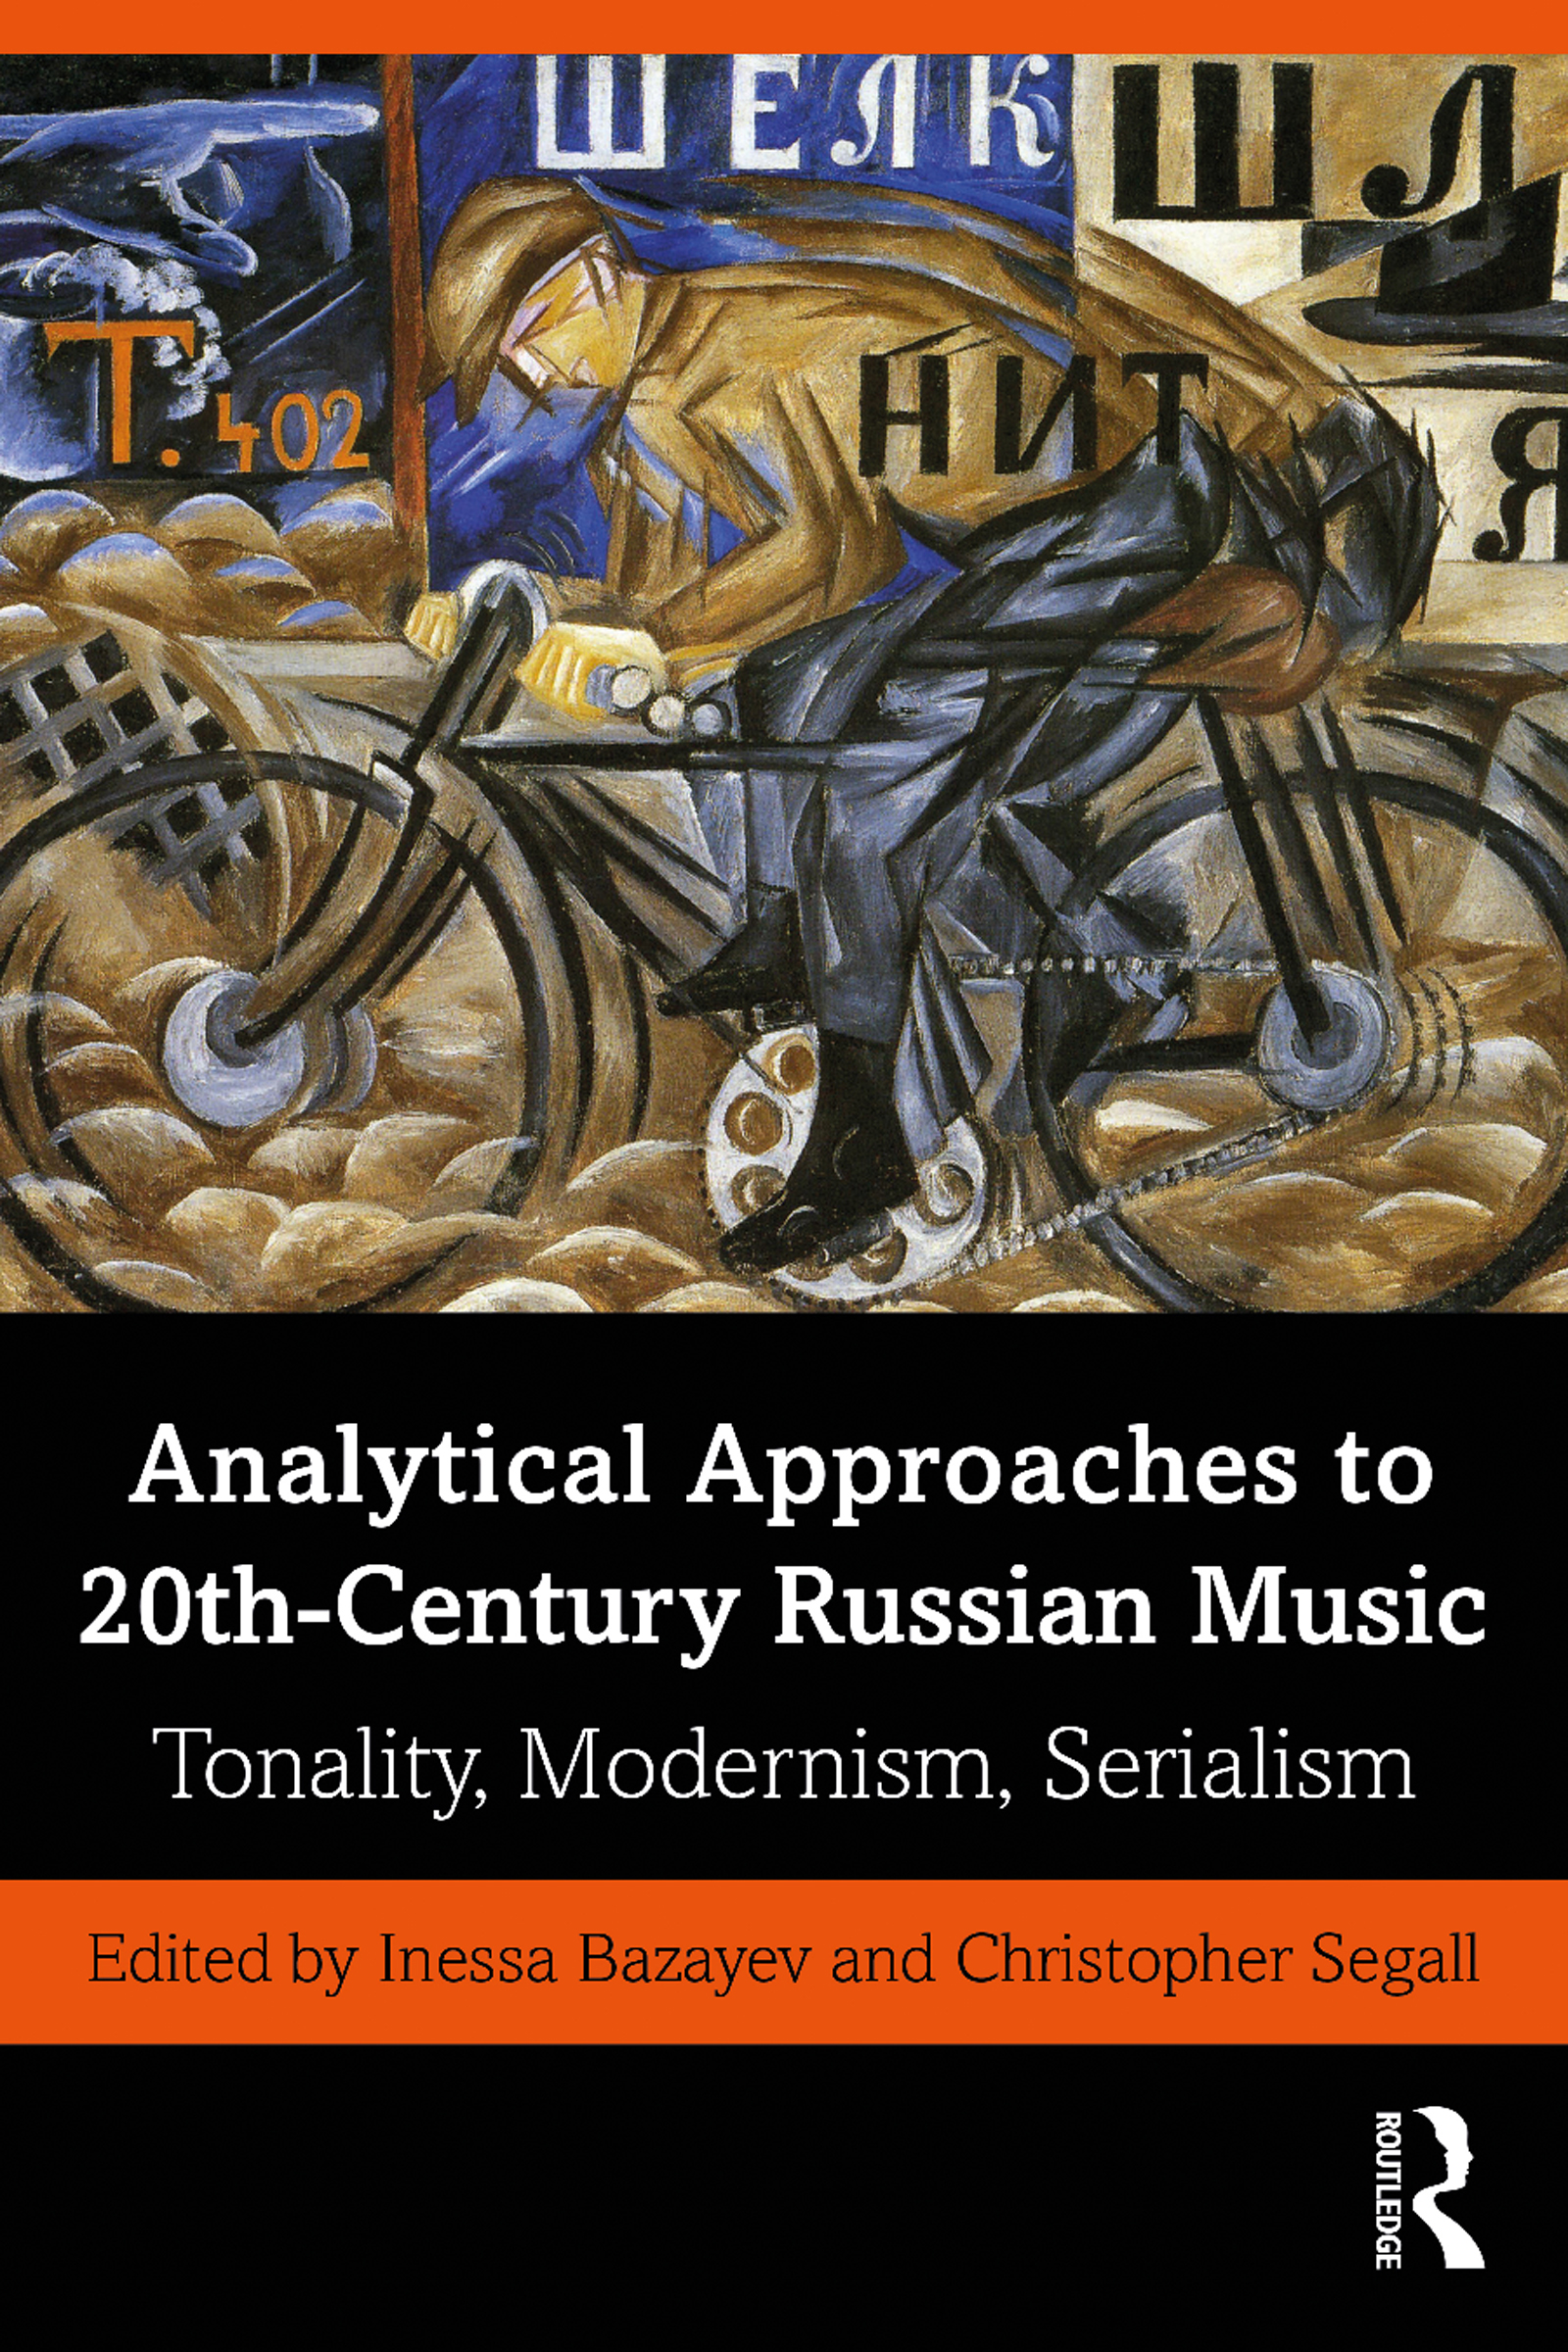 Analytical Approaches to 20th-Century Russian Music